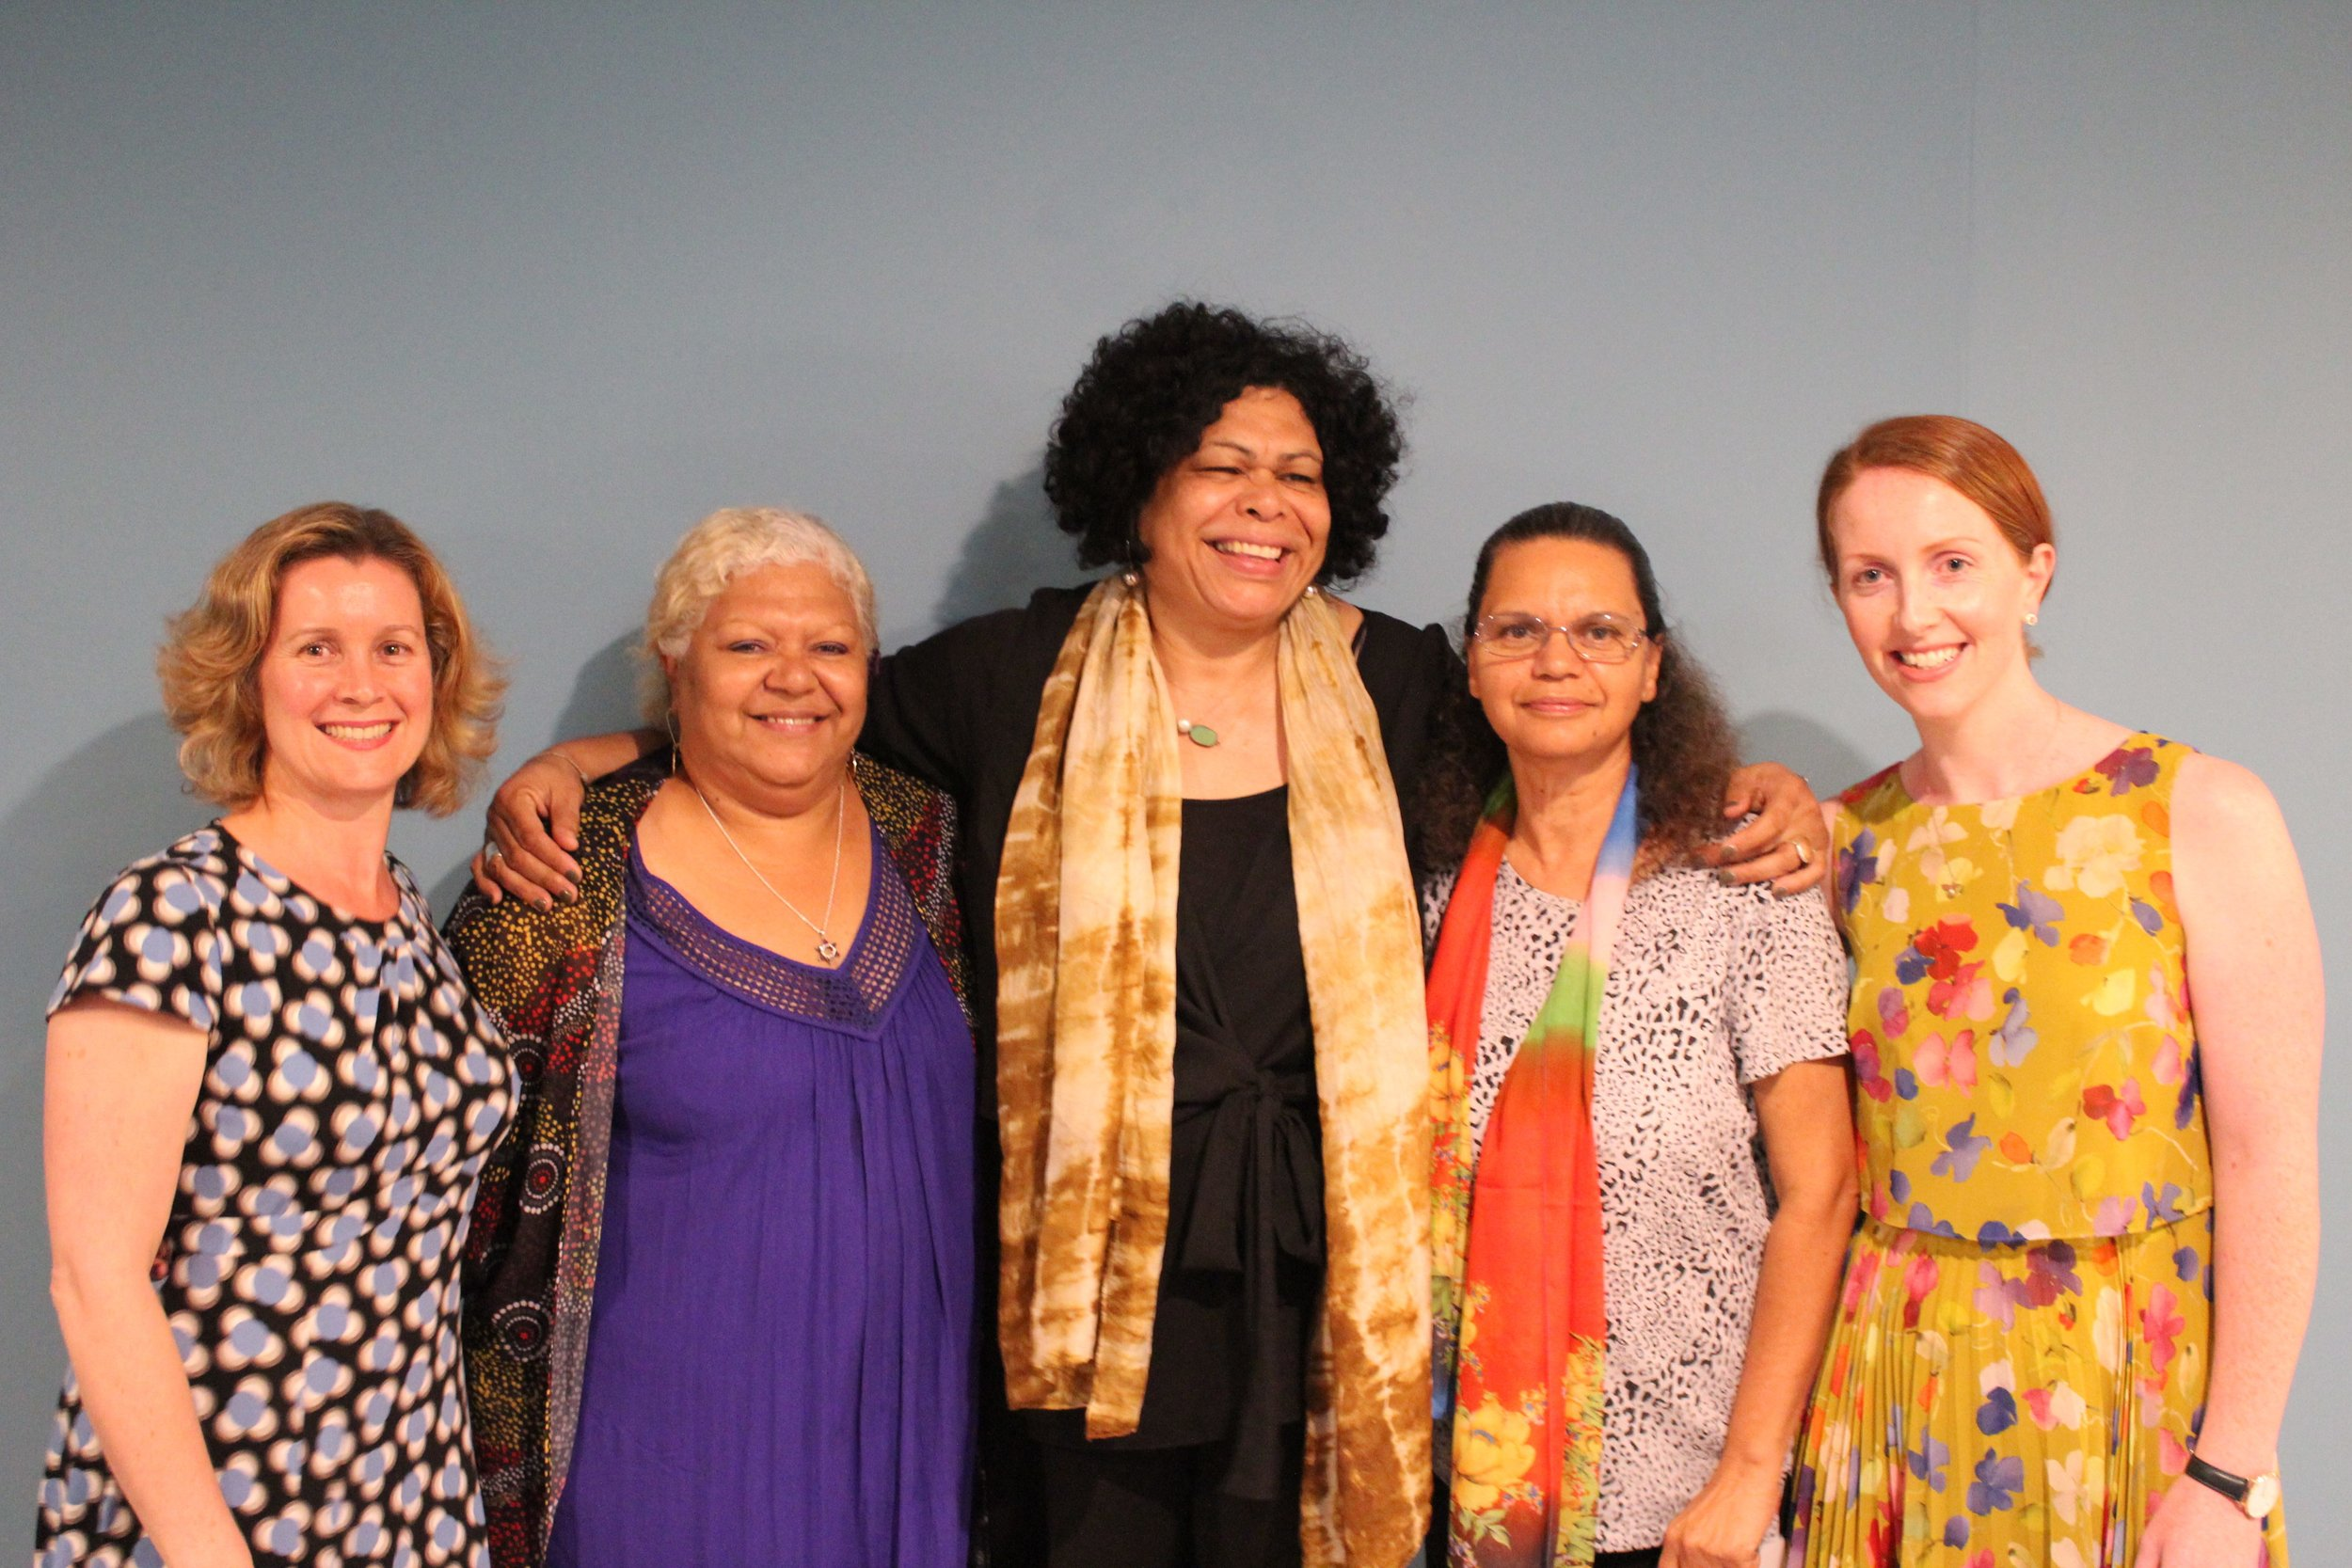 Left to right: Margo Leach (ADM's Director of Mercy & Justice Ministries), Sharon Minniecon (Scarred Tree Indigenous Ministries, Glebe), Andrea Mason (Chief Executive Officer of Ngaanyatjarrra Pitjantjatjara Yankunytjatjara Women's Council), Kayleen Manton (Mt Druitt Indigenous Church) and Kate Harrison Brennan (ADM CEO)